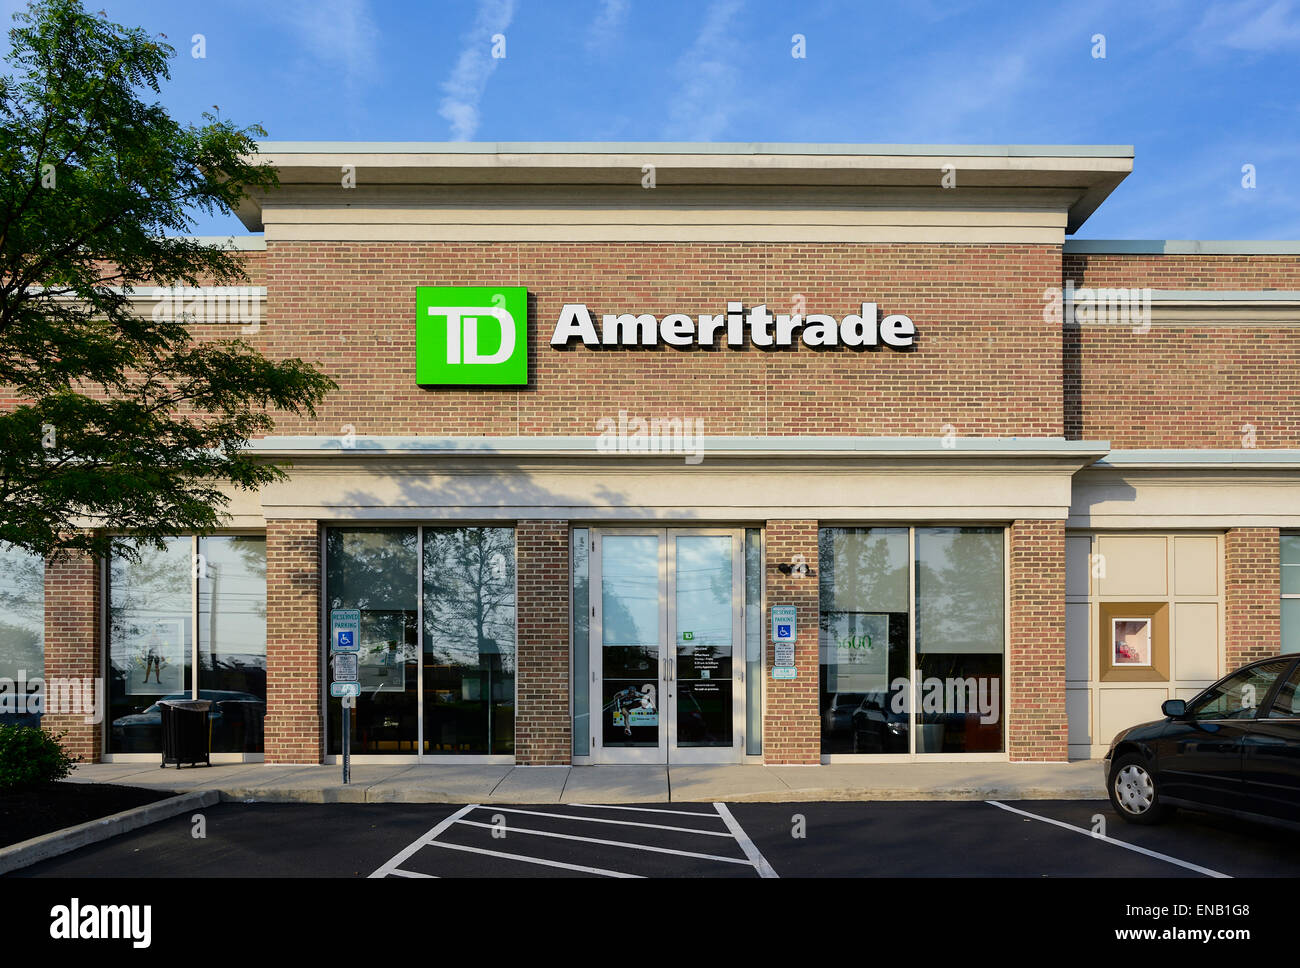 TD Ameritrade discount brokerage office, Mount Laural, New Jersey, USA. - Stock Image